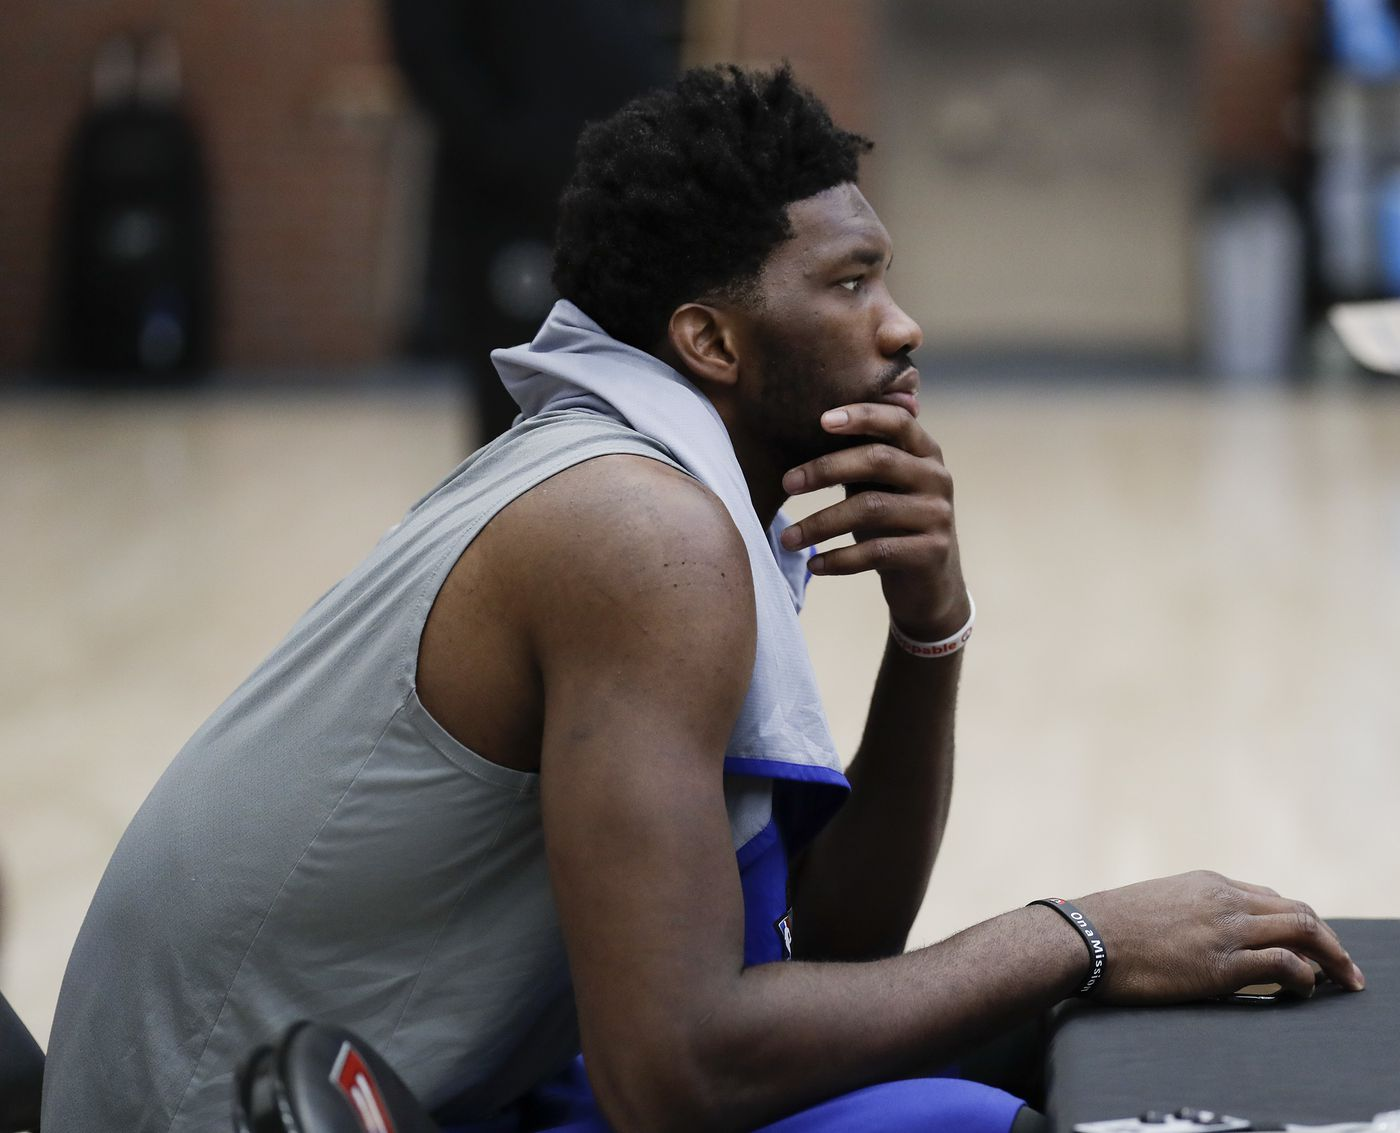 Joel Embiid on Sixers missing out on LeBron James, Paul George, Kawhi Leonard: 'I want to be better than those guys'